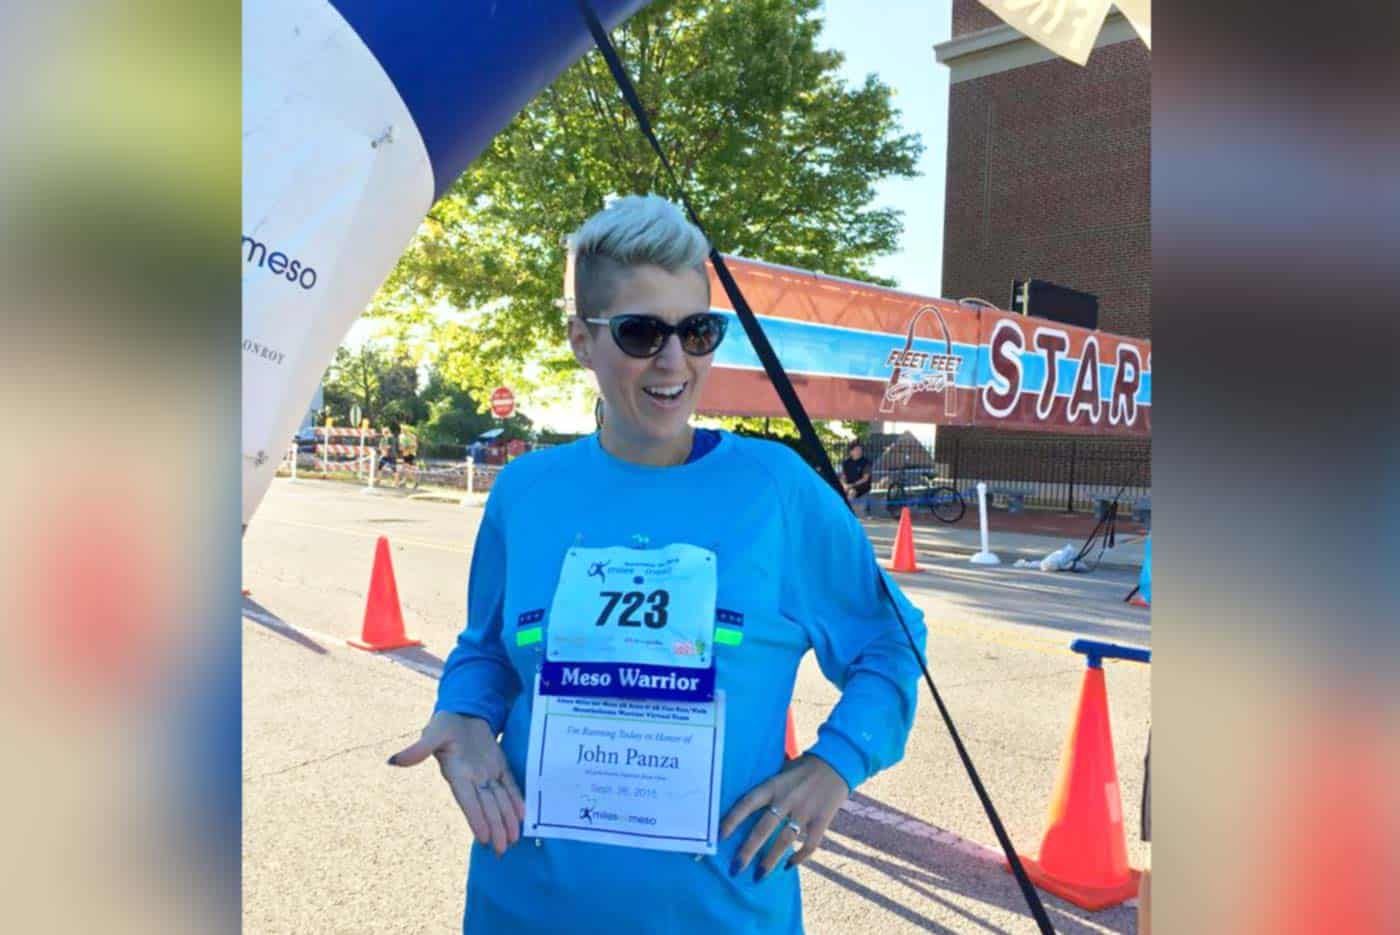 Heather Von St. James at Miles for Meso awareness event